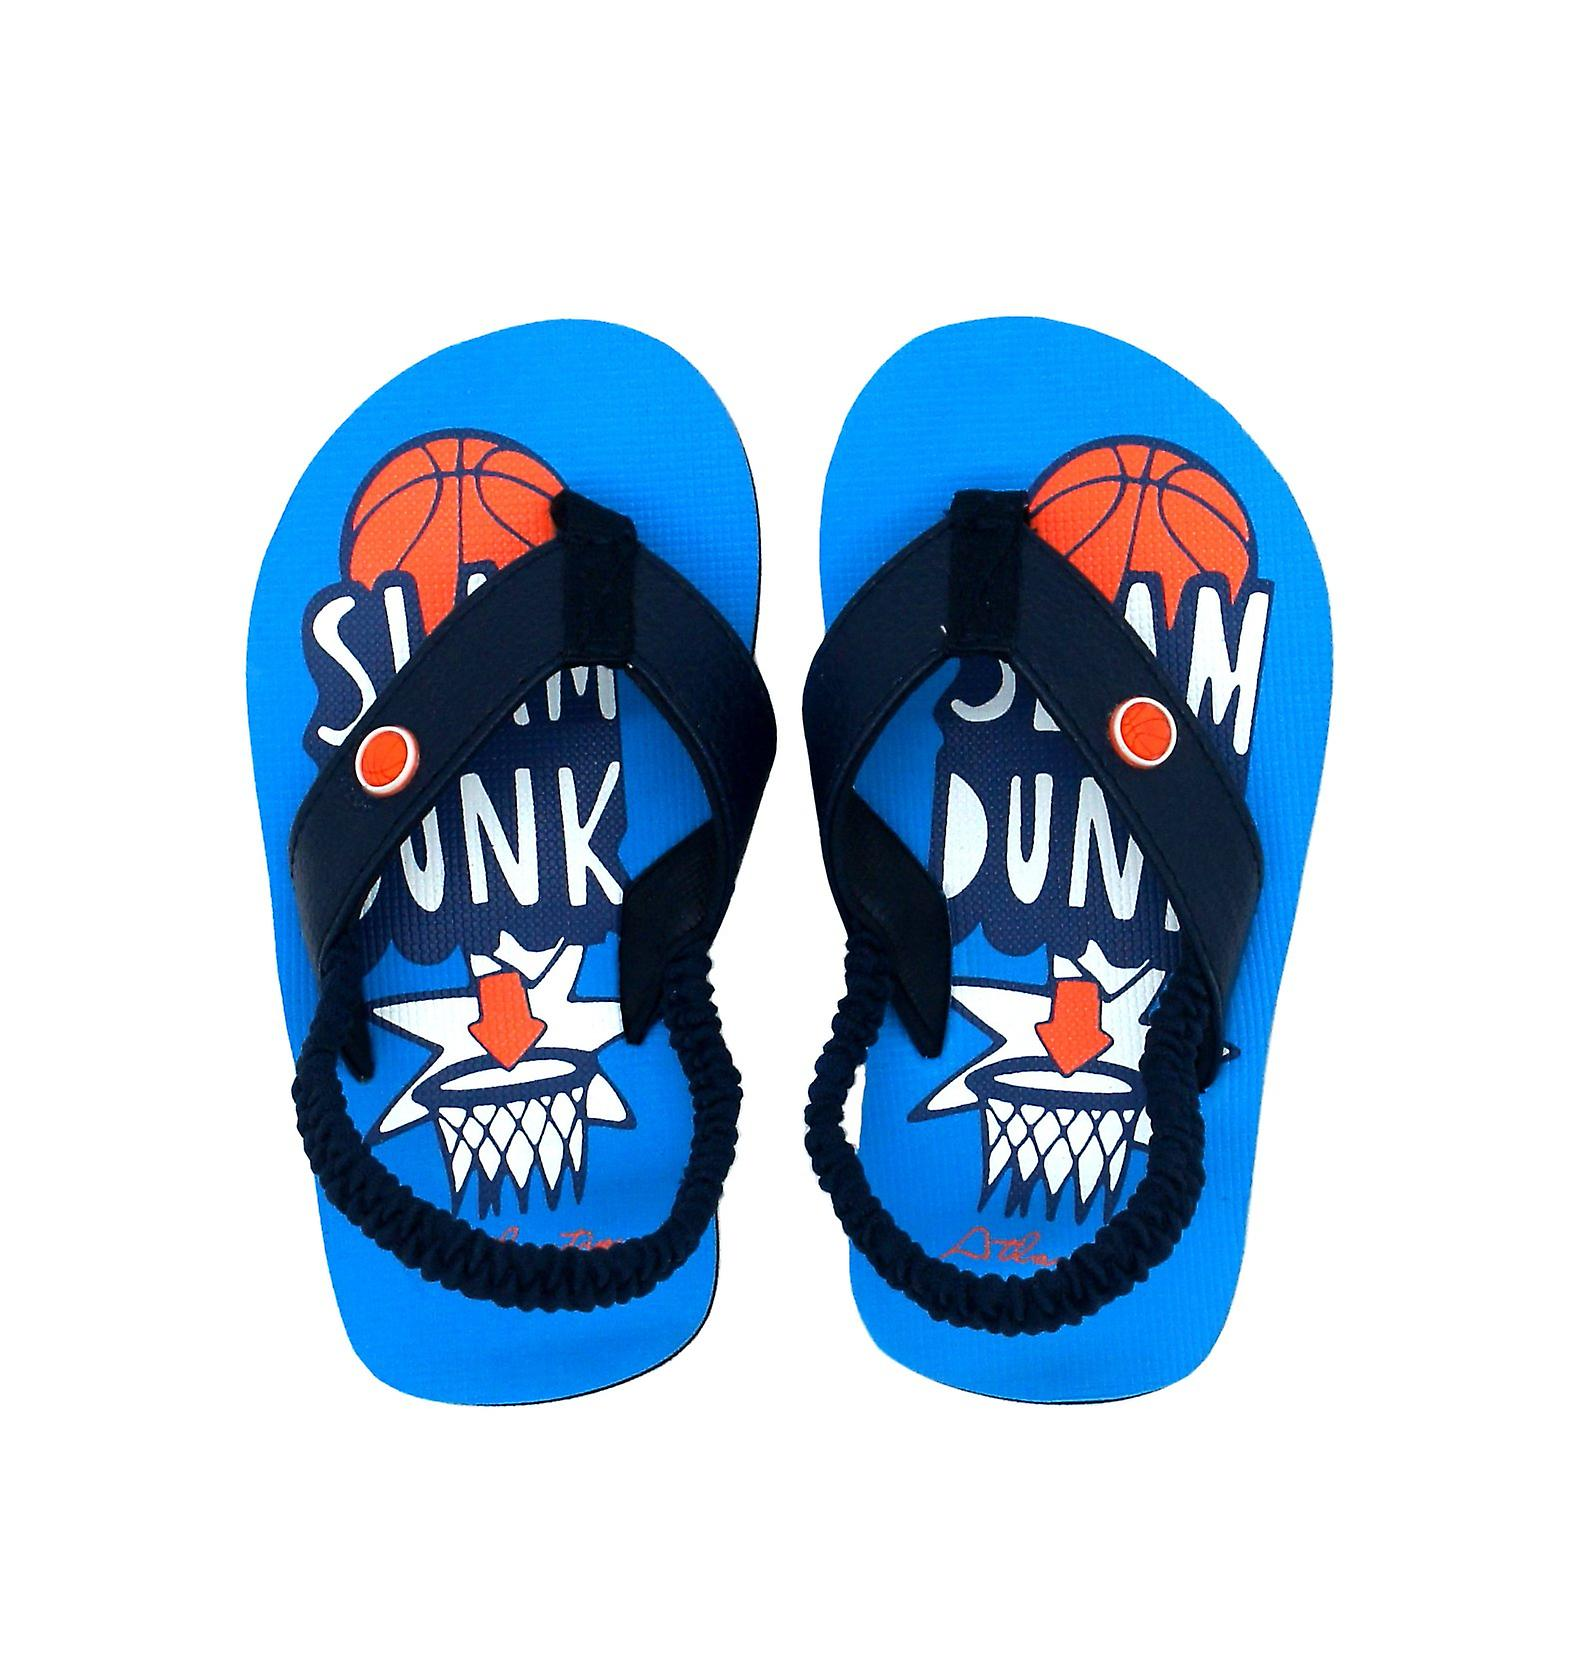 Atlantis Shoes Kids Supportive Cushioned Comfortable Sandals Flip Flops Slamdunk Navy